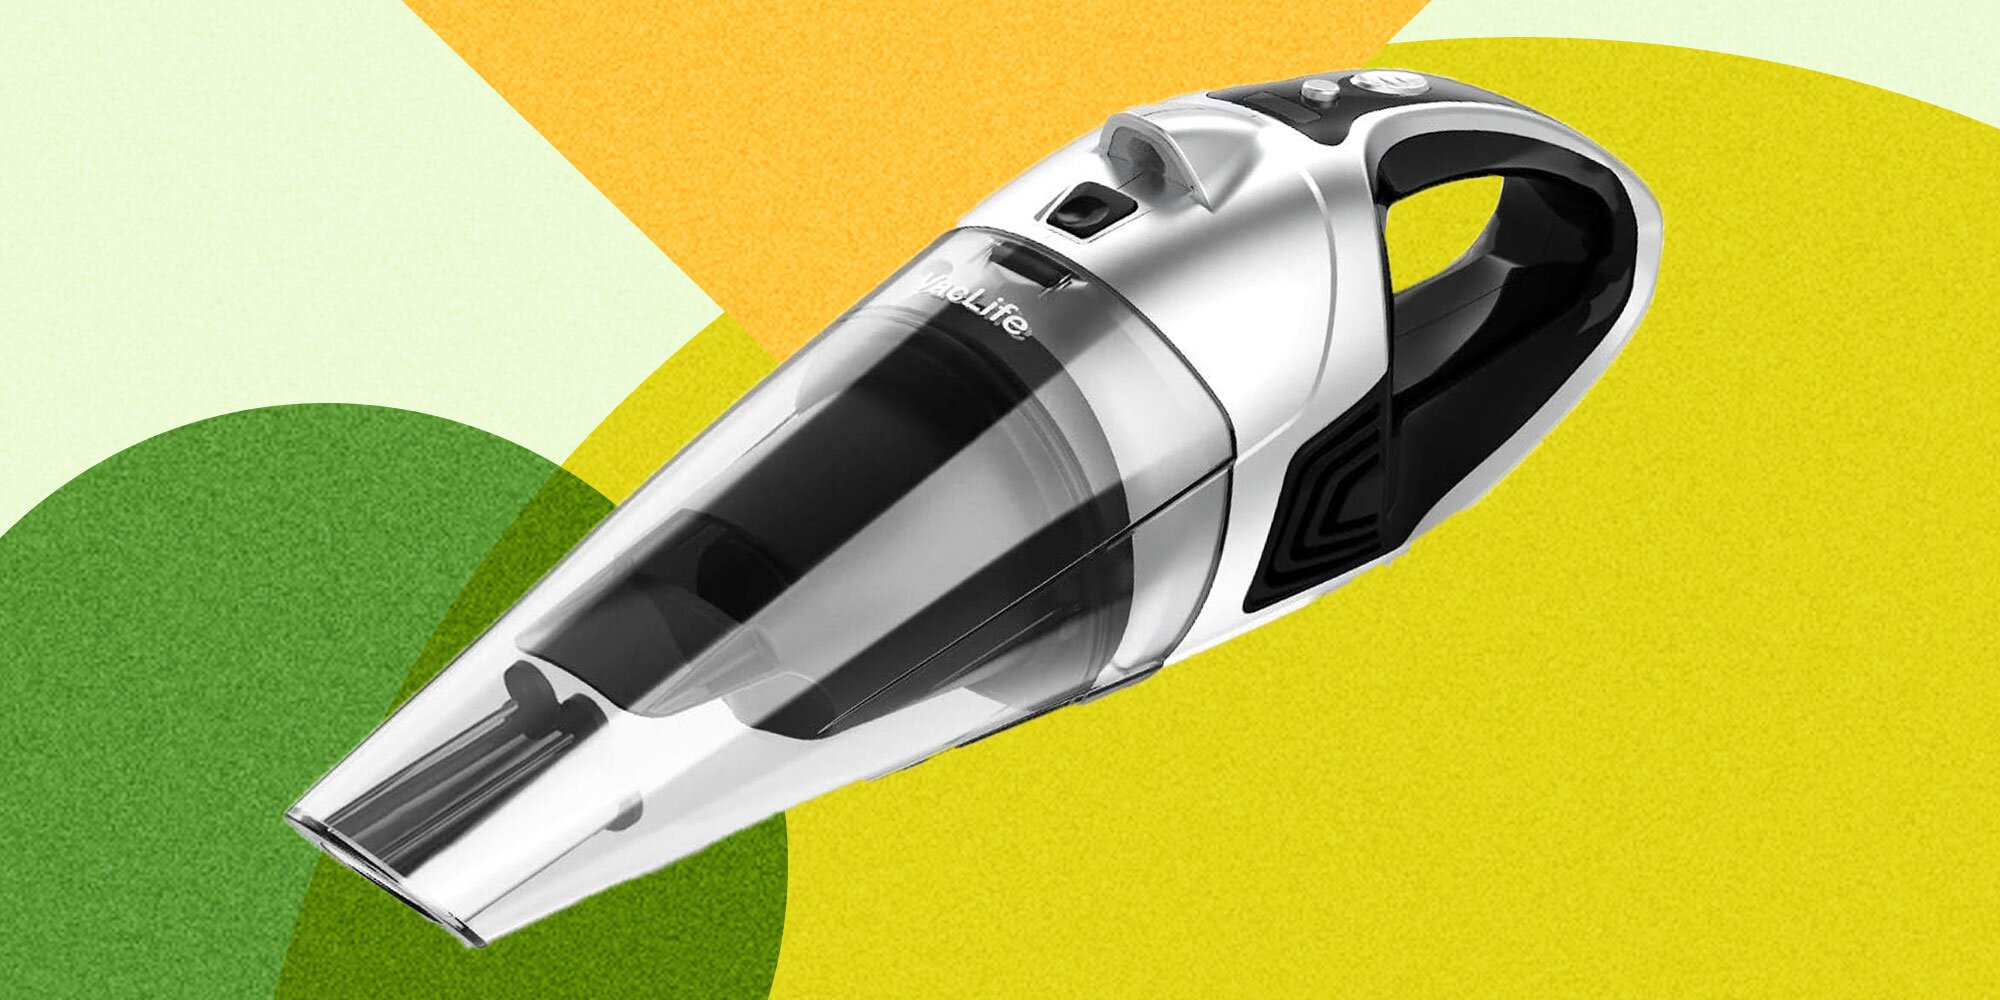 This Handheld Vacuum Is Perfect for Cleaning Up Crumbs—and It's 35% Off Right Now